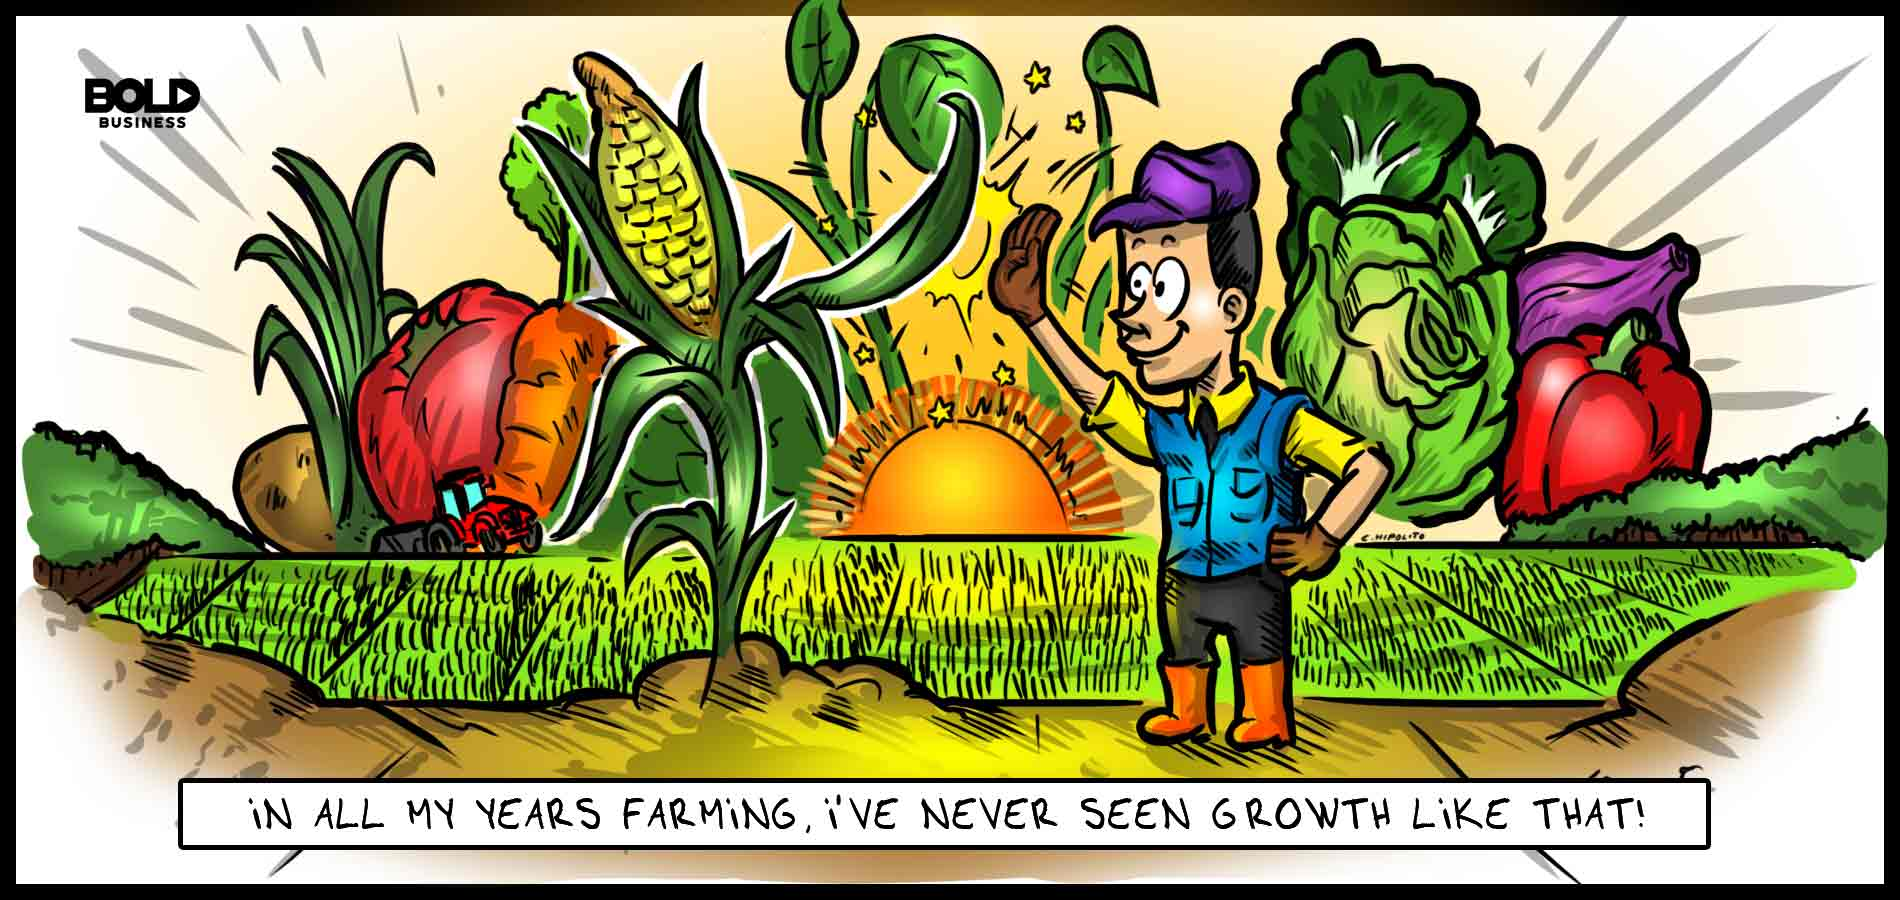 cartoon of a farmer high-fiving a stalk of corn while other kinds of vegetables surround them in the midst of a sunrise